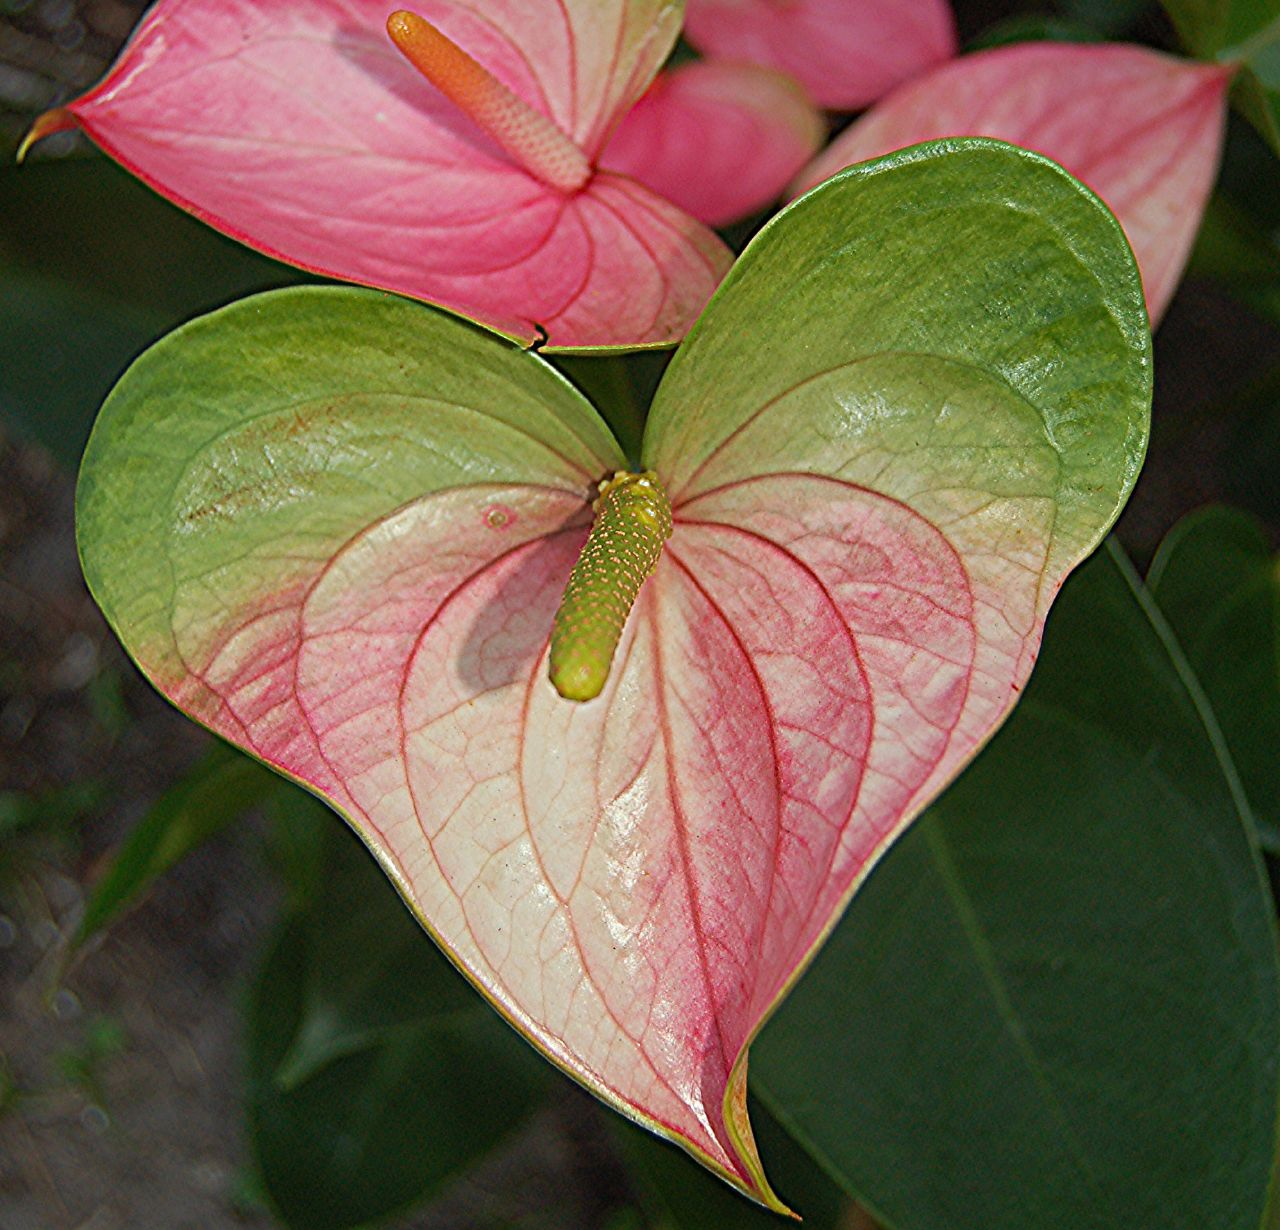 Heart-shaped pink and green Anthurium